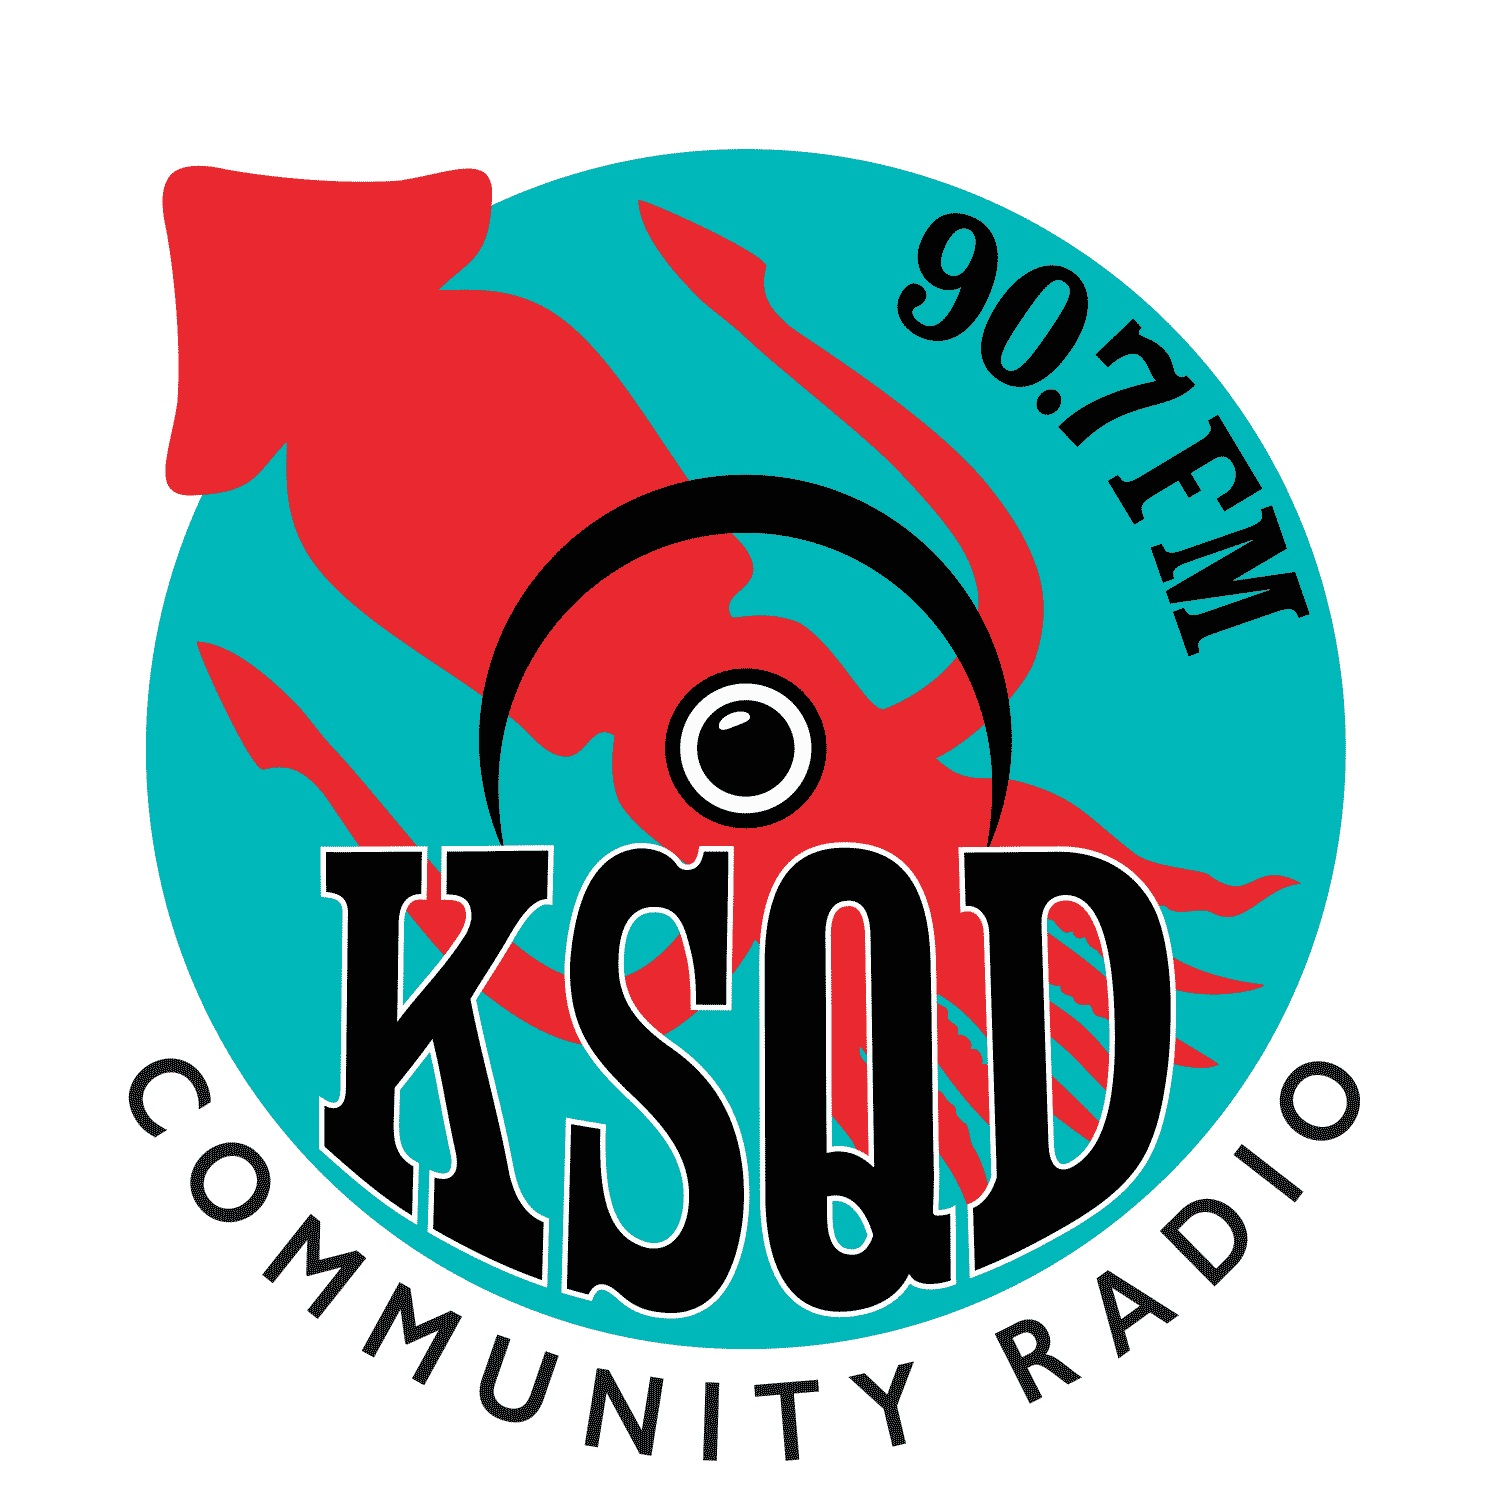 KSQD Community Radio - Thank you!